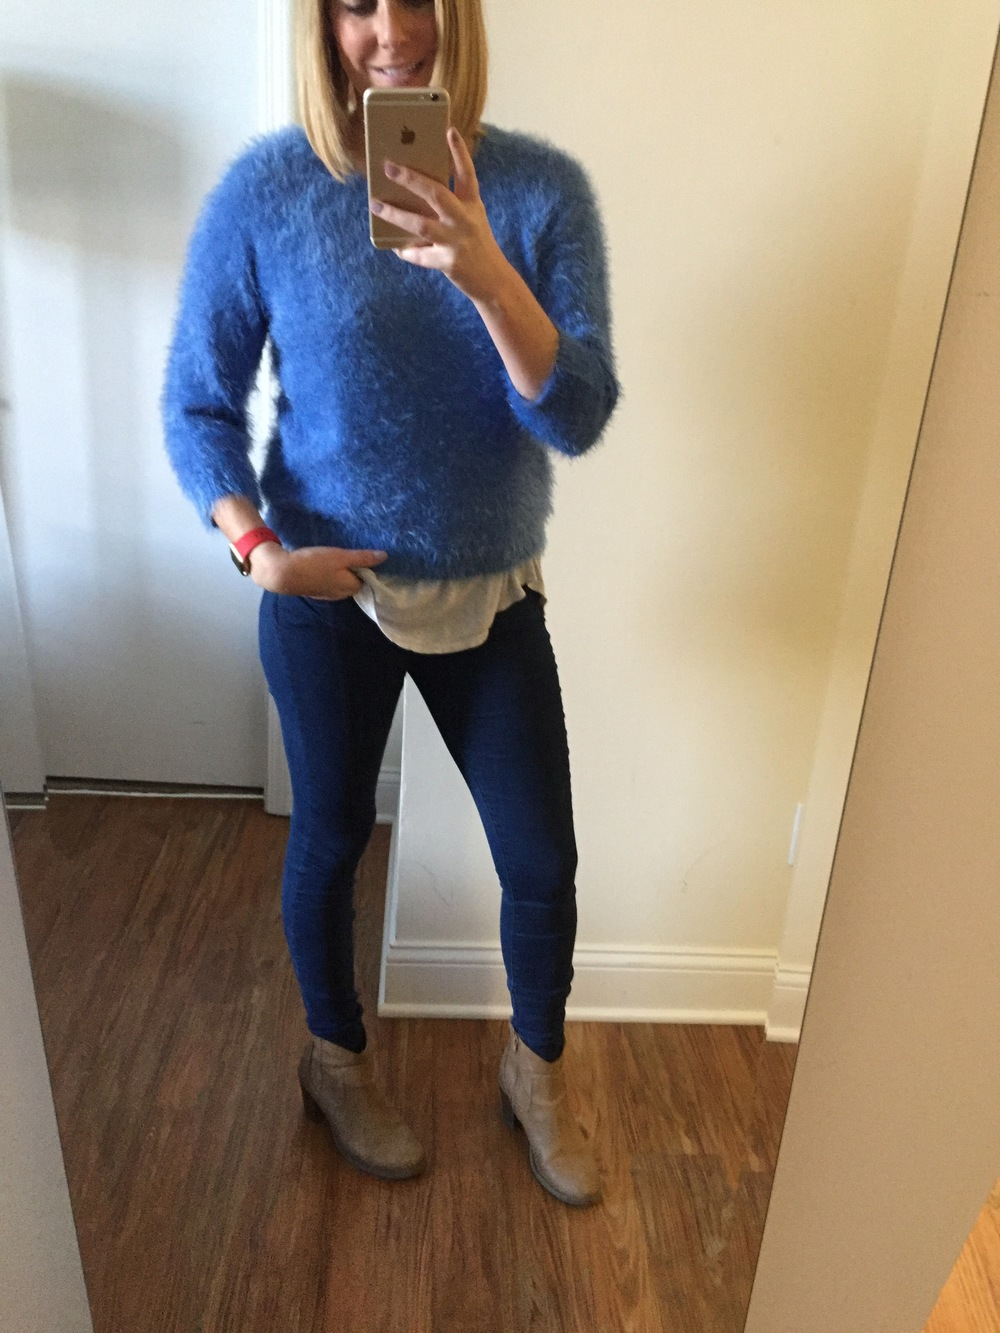 Sweater: Forever 21 (last year), Jeans Gap,  1969 Resolution legging jean,  Boots: Old Navy, Watch: Apple,  38mm Gold Aluminum Case  (with (PRODUCT) RED Sport Band)